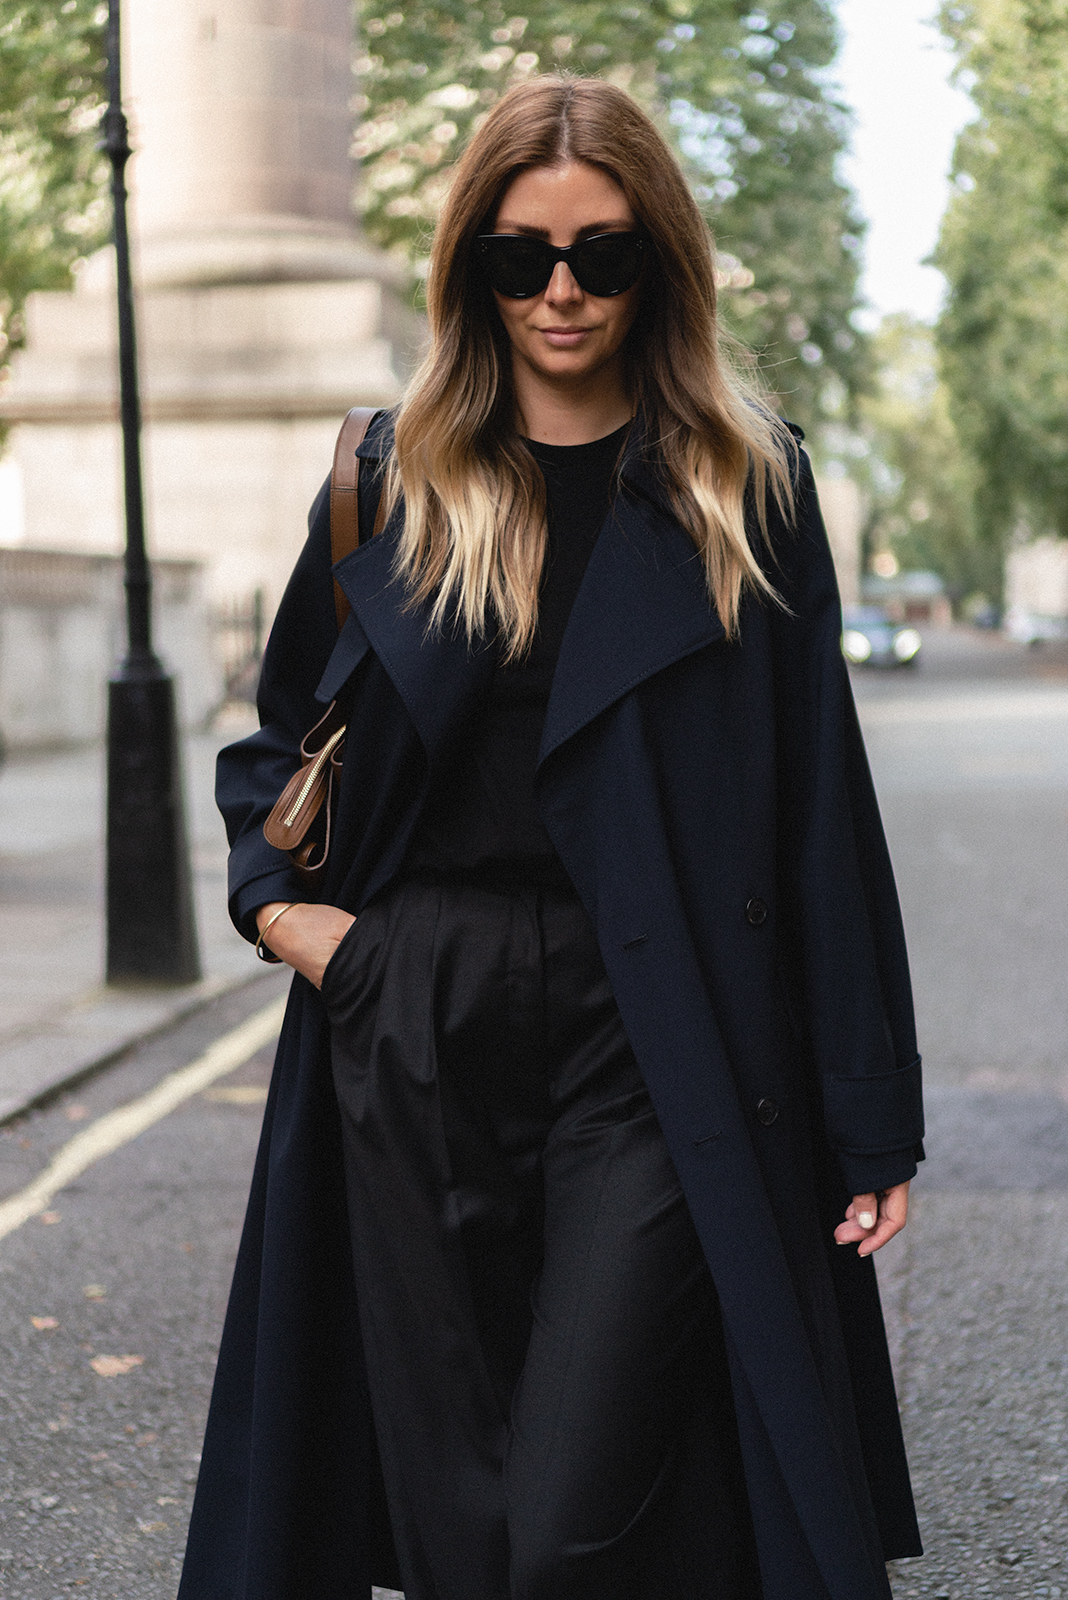 Emma Hill style. Celine Baby Audrey sunglasses, Navy trench coat, black tailored pleated trousers, black t-shirt, Celine Tri-Fold bag in tan leather. Chic Autumn Fall outfit